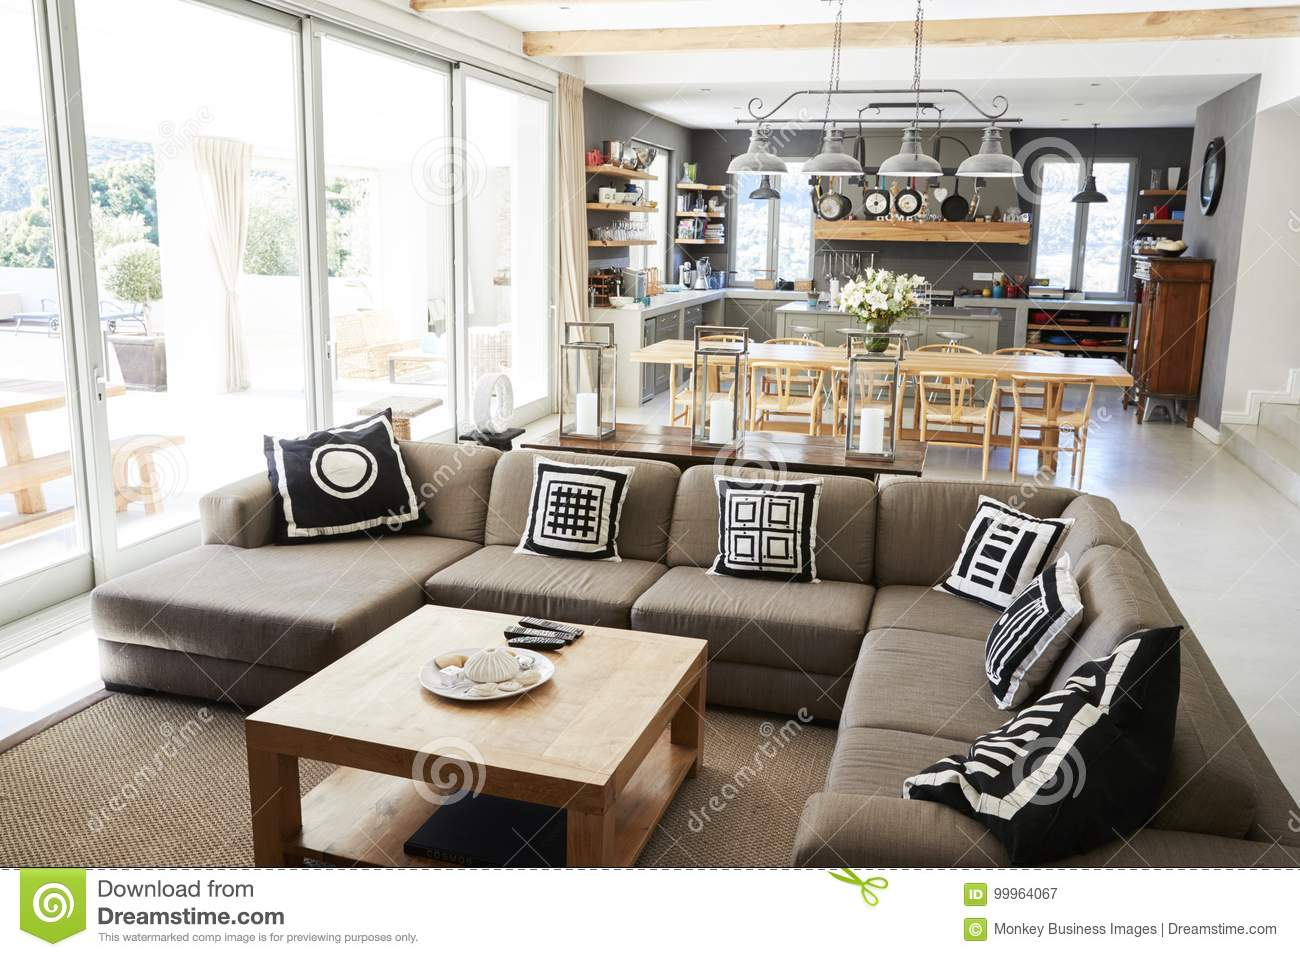 Home Interior With Open Plan KitchenLounge And Dining